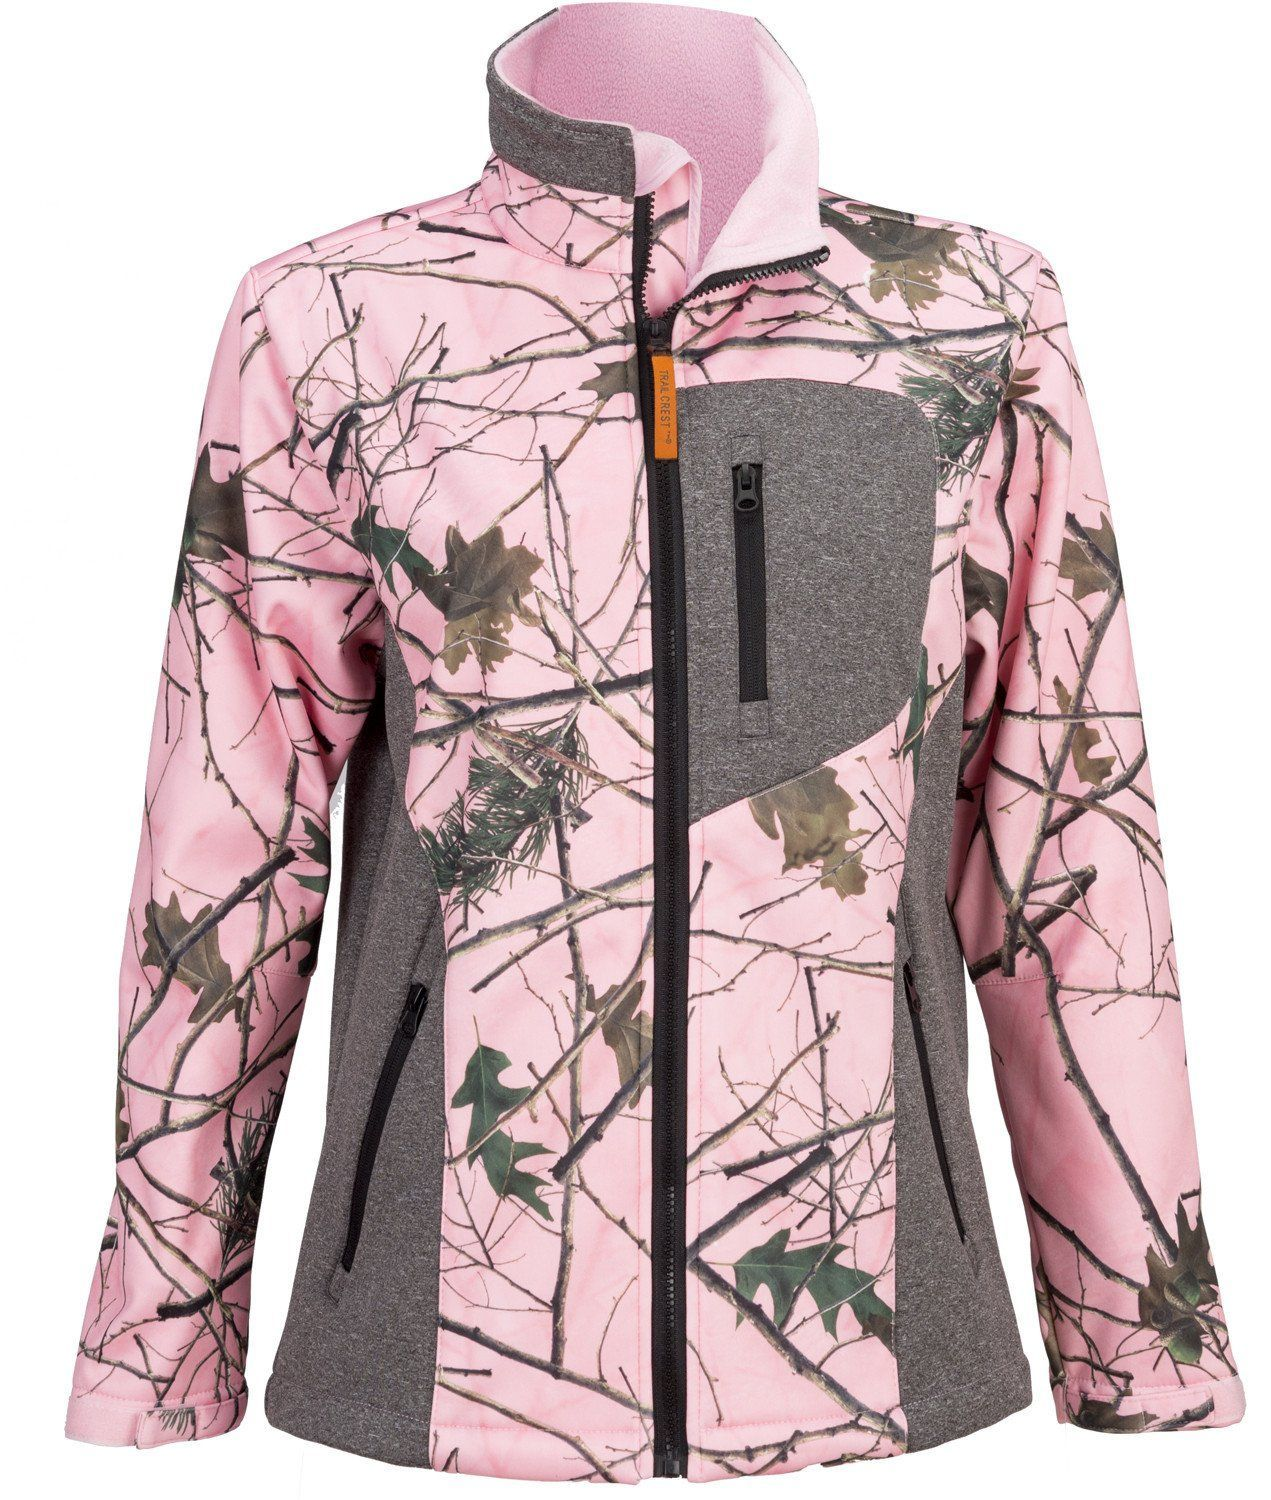 2833b24ba0722 Women's Pink Forest Camo Custom Xrg Soft Shell Jacket | Products ...